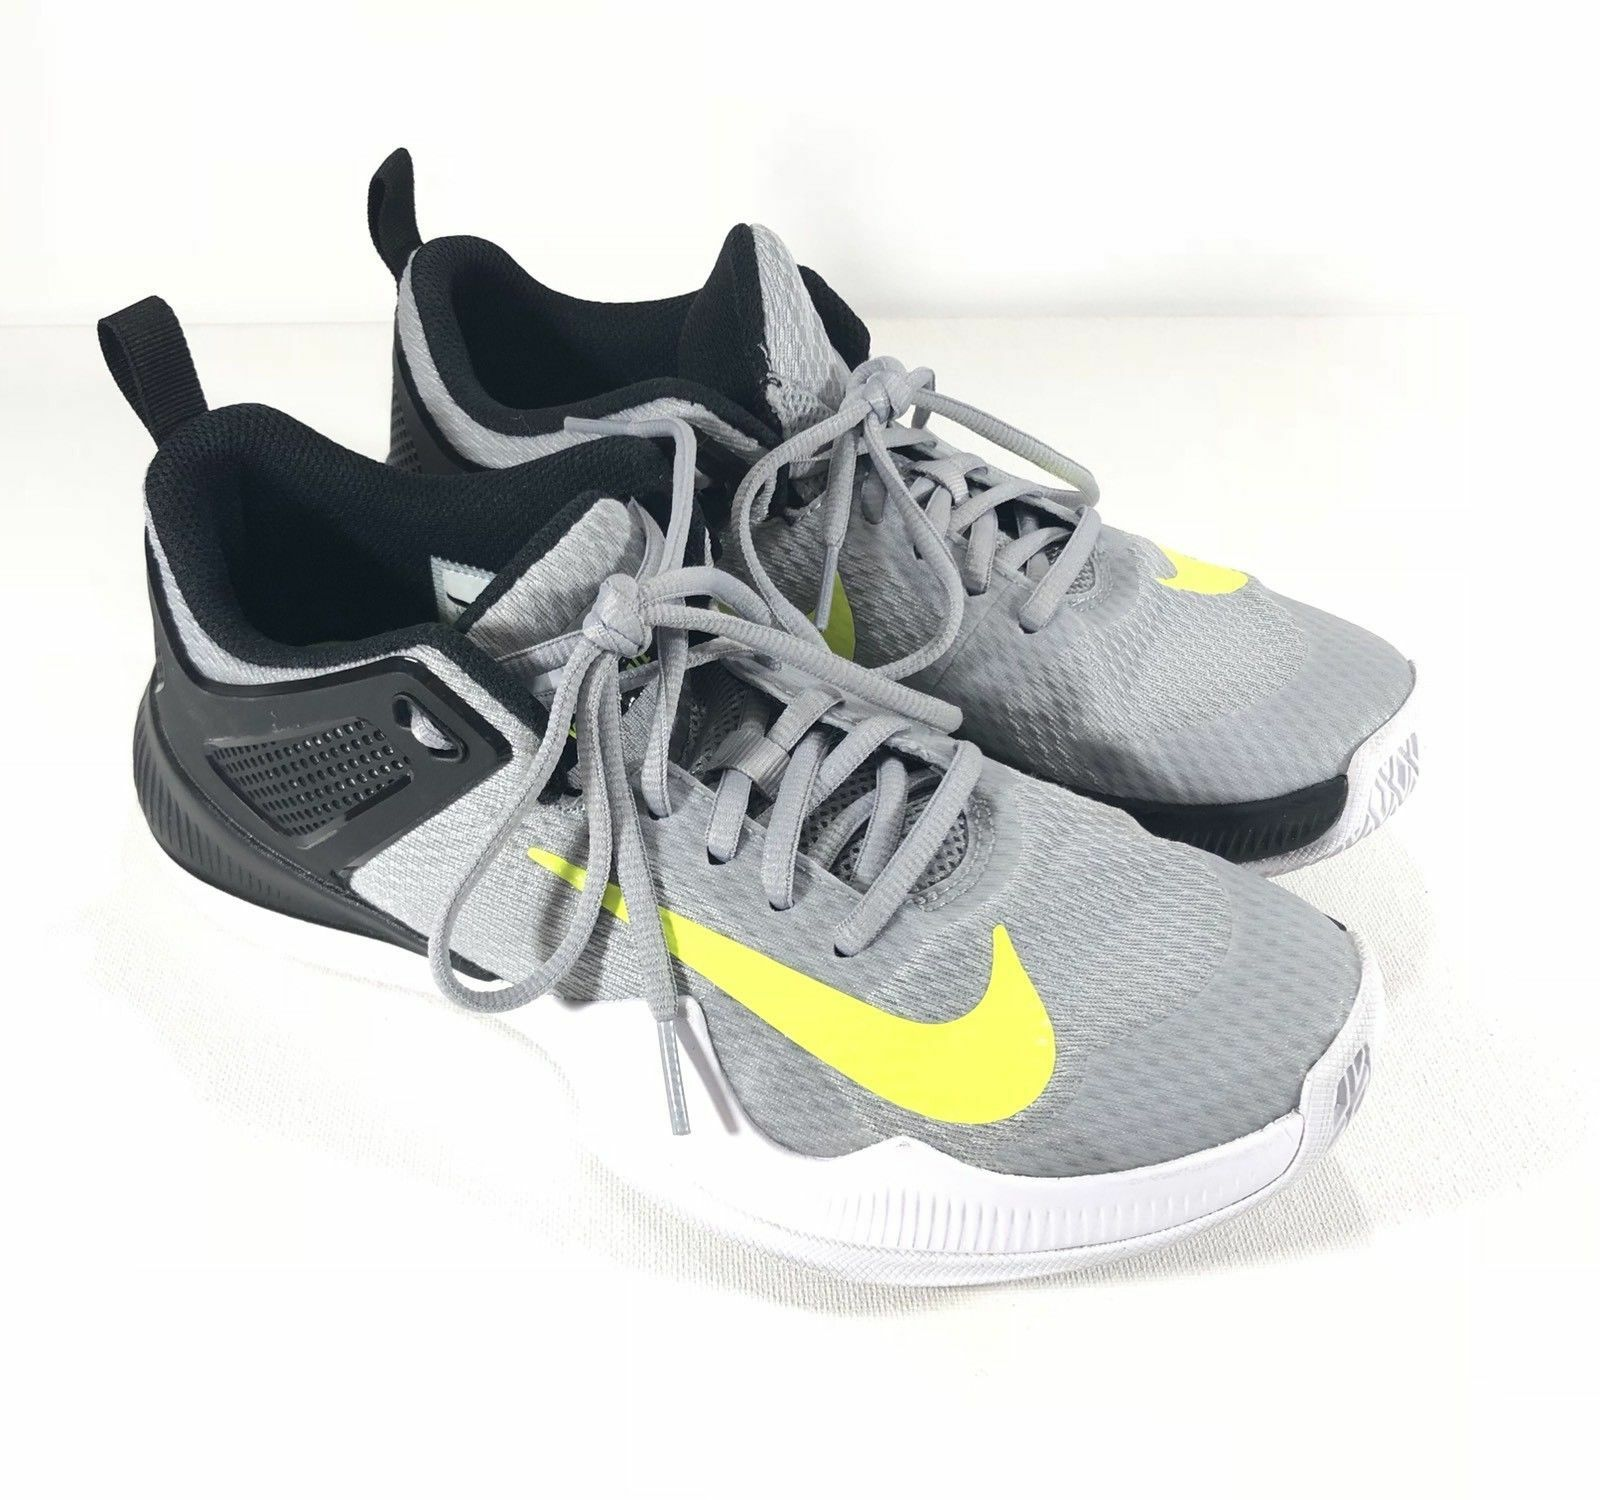 premium selection 18e0b 508cf NEW Nike Women Size 12 Air Air Air Zoom Hyperace Volleyball Shoes 902367-007  Grey